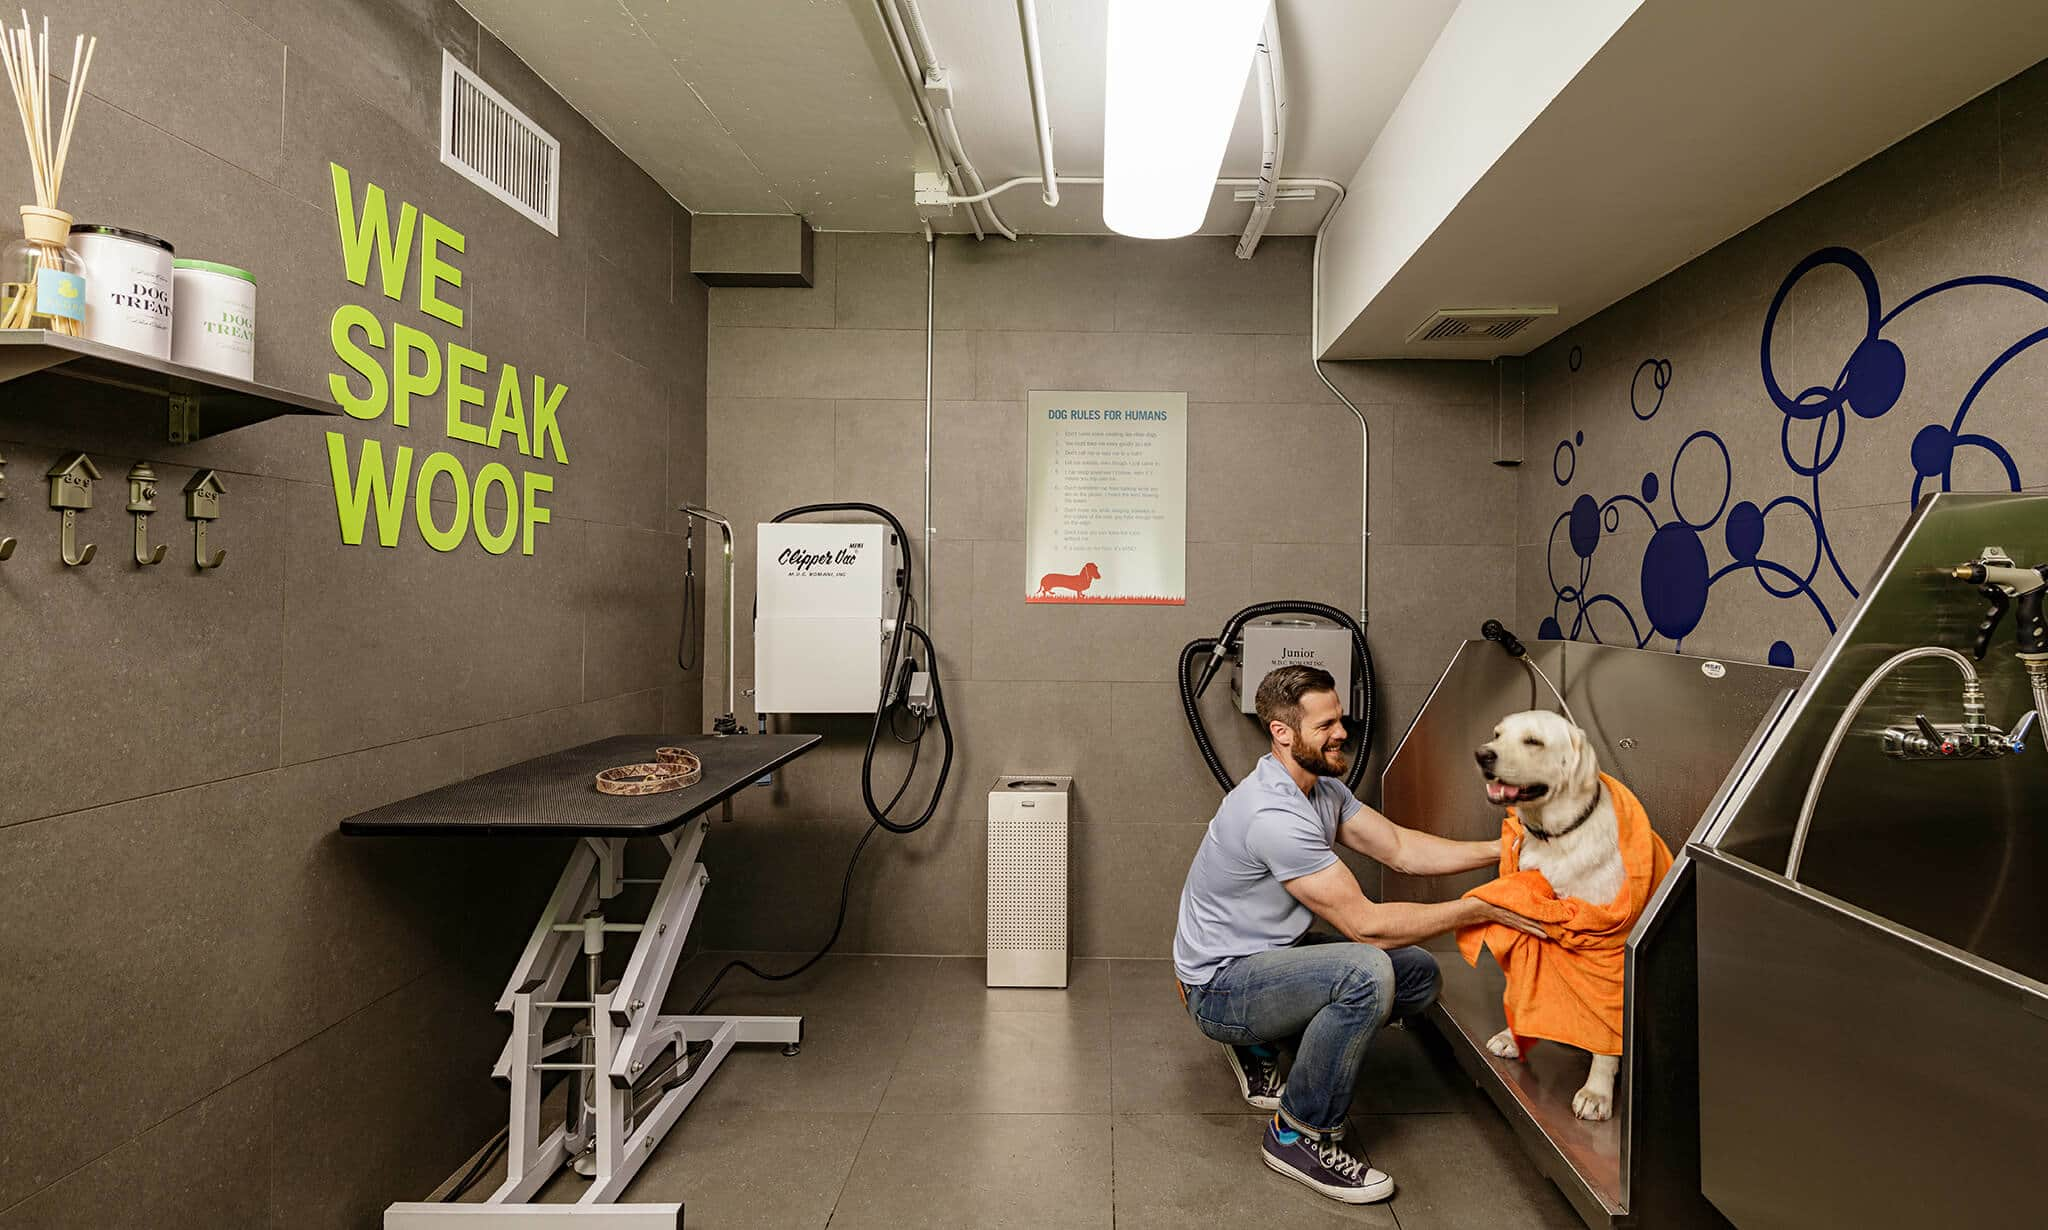 A man washing his dog in an apartment pet wash station, showing how home is efforltess